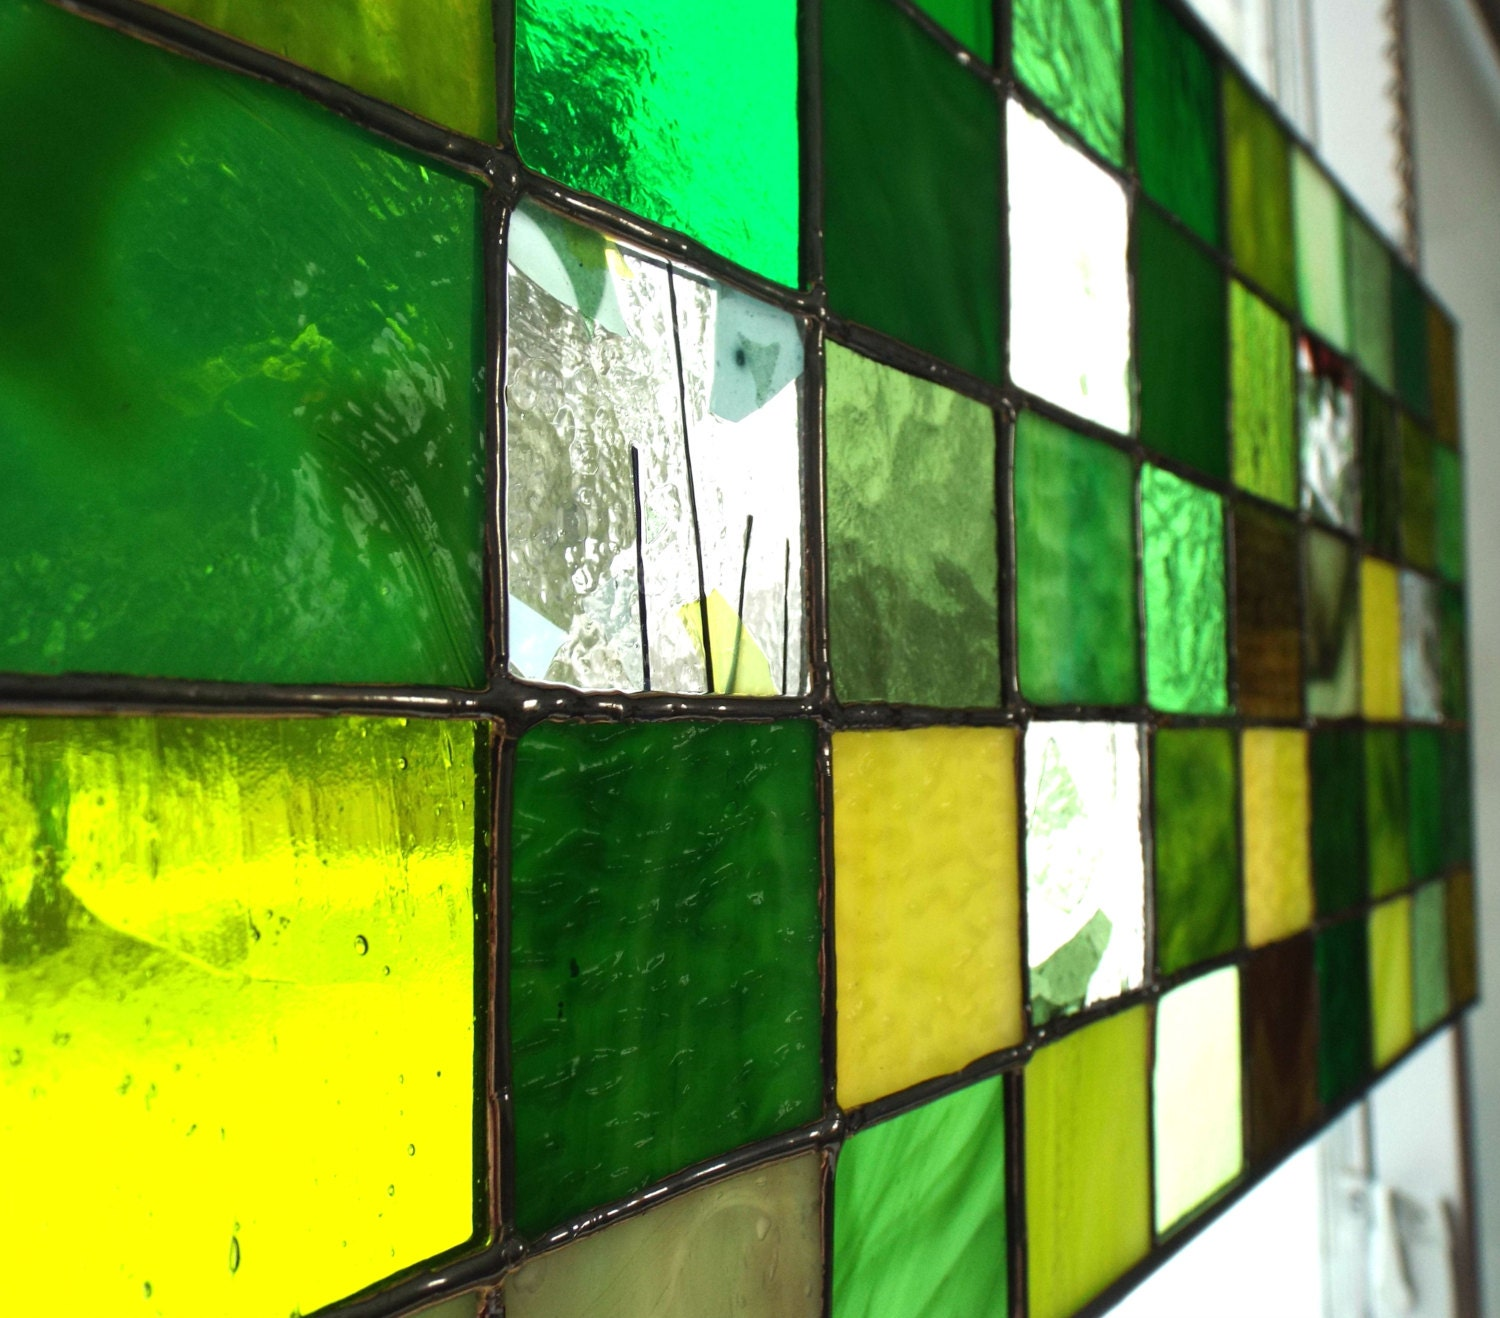 Green stained glass panel textured art glass window decor for Textured glass panels